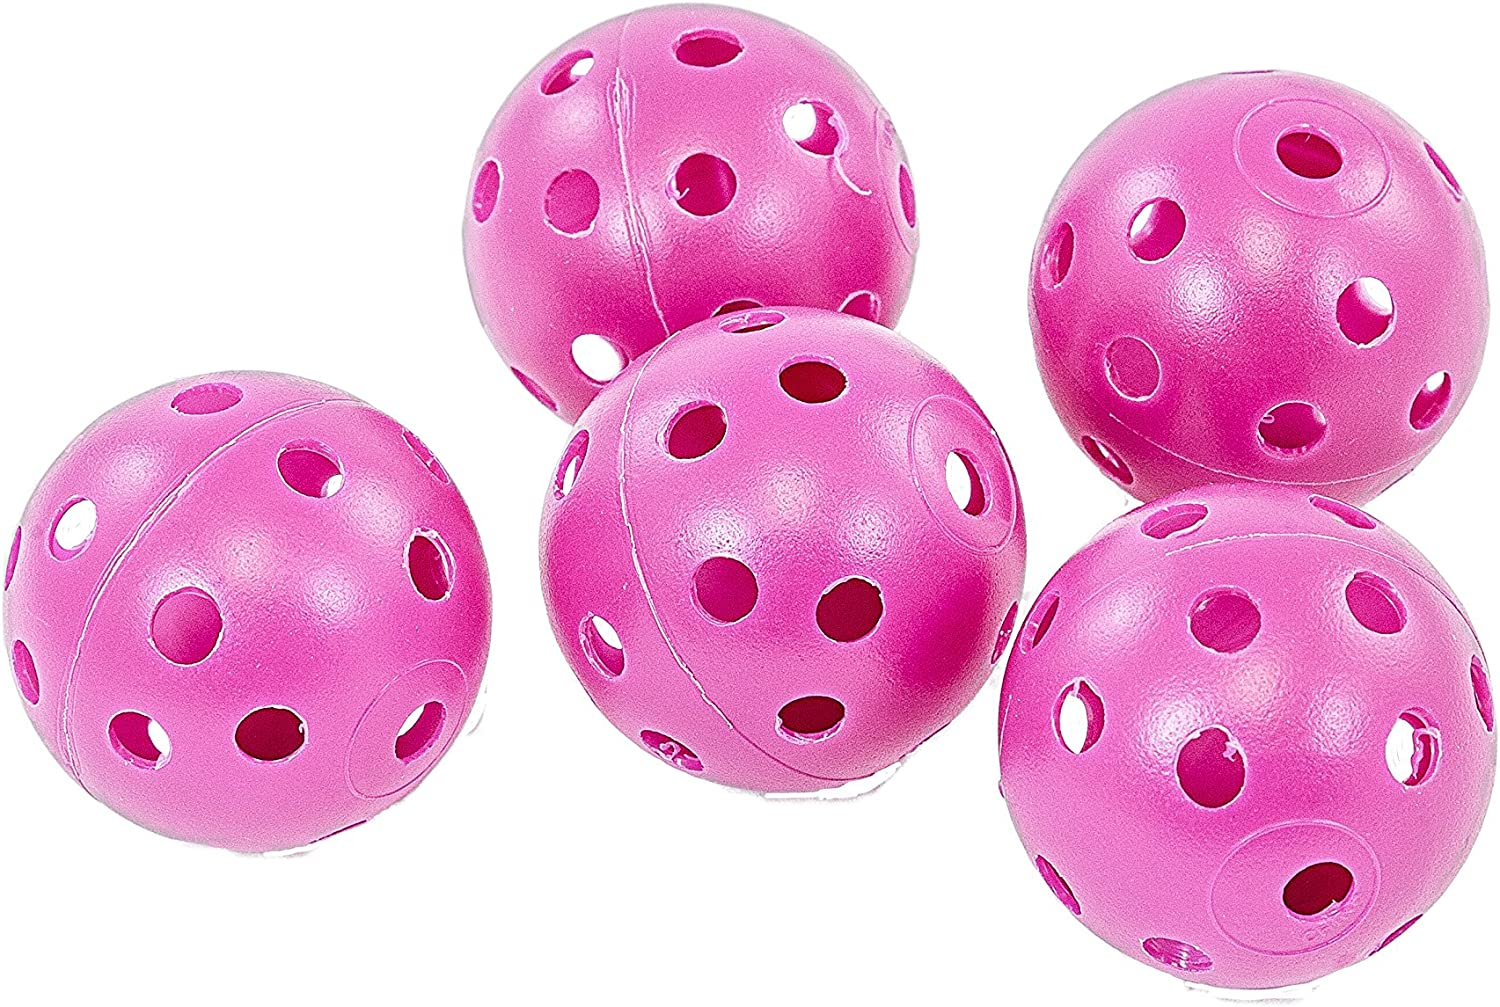 Jef World of Golf Gifts and Gallery, Inc. Practice Balls Pink